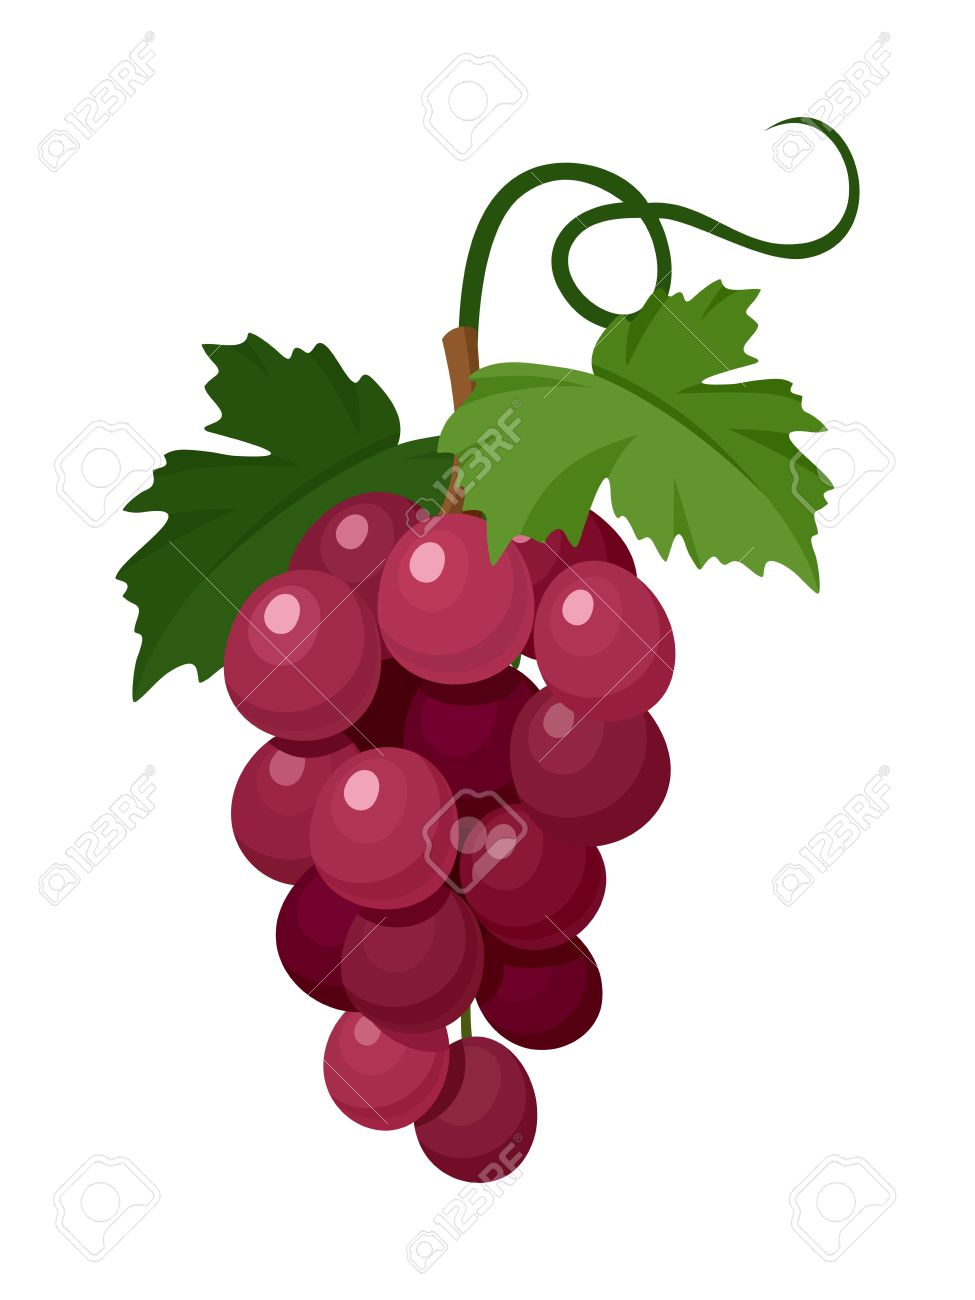 red grapes vector illustration royalty free cliparts vectors and rh 123rf com graph vector functions graph vectors in 3d